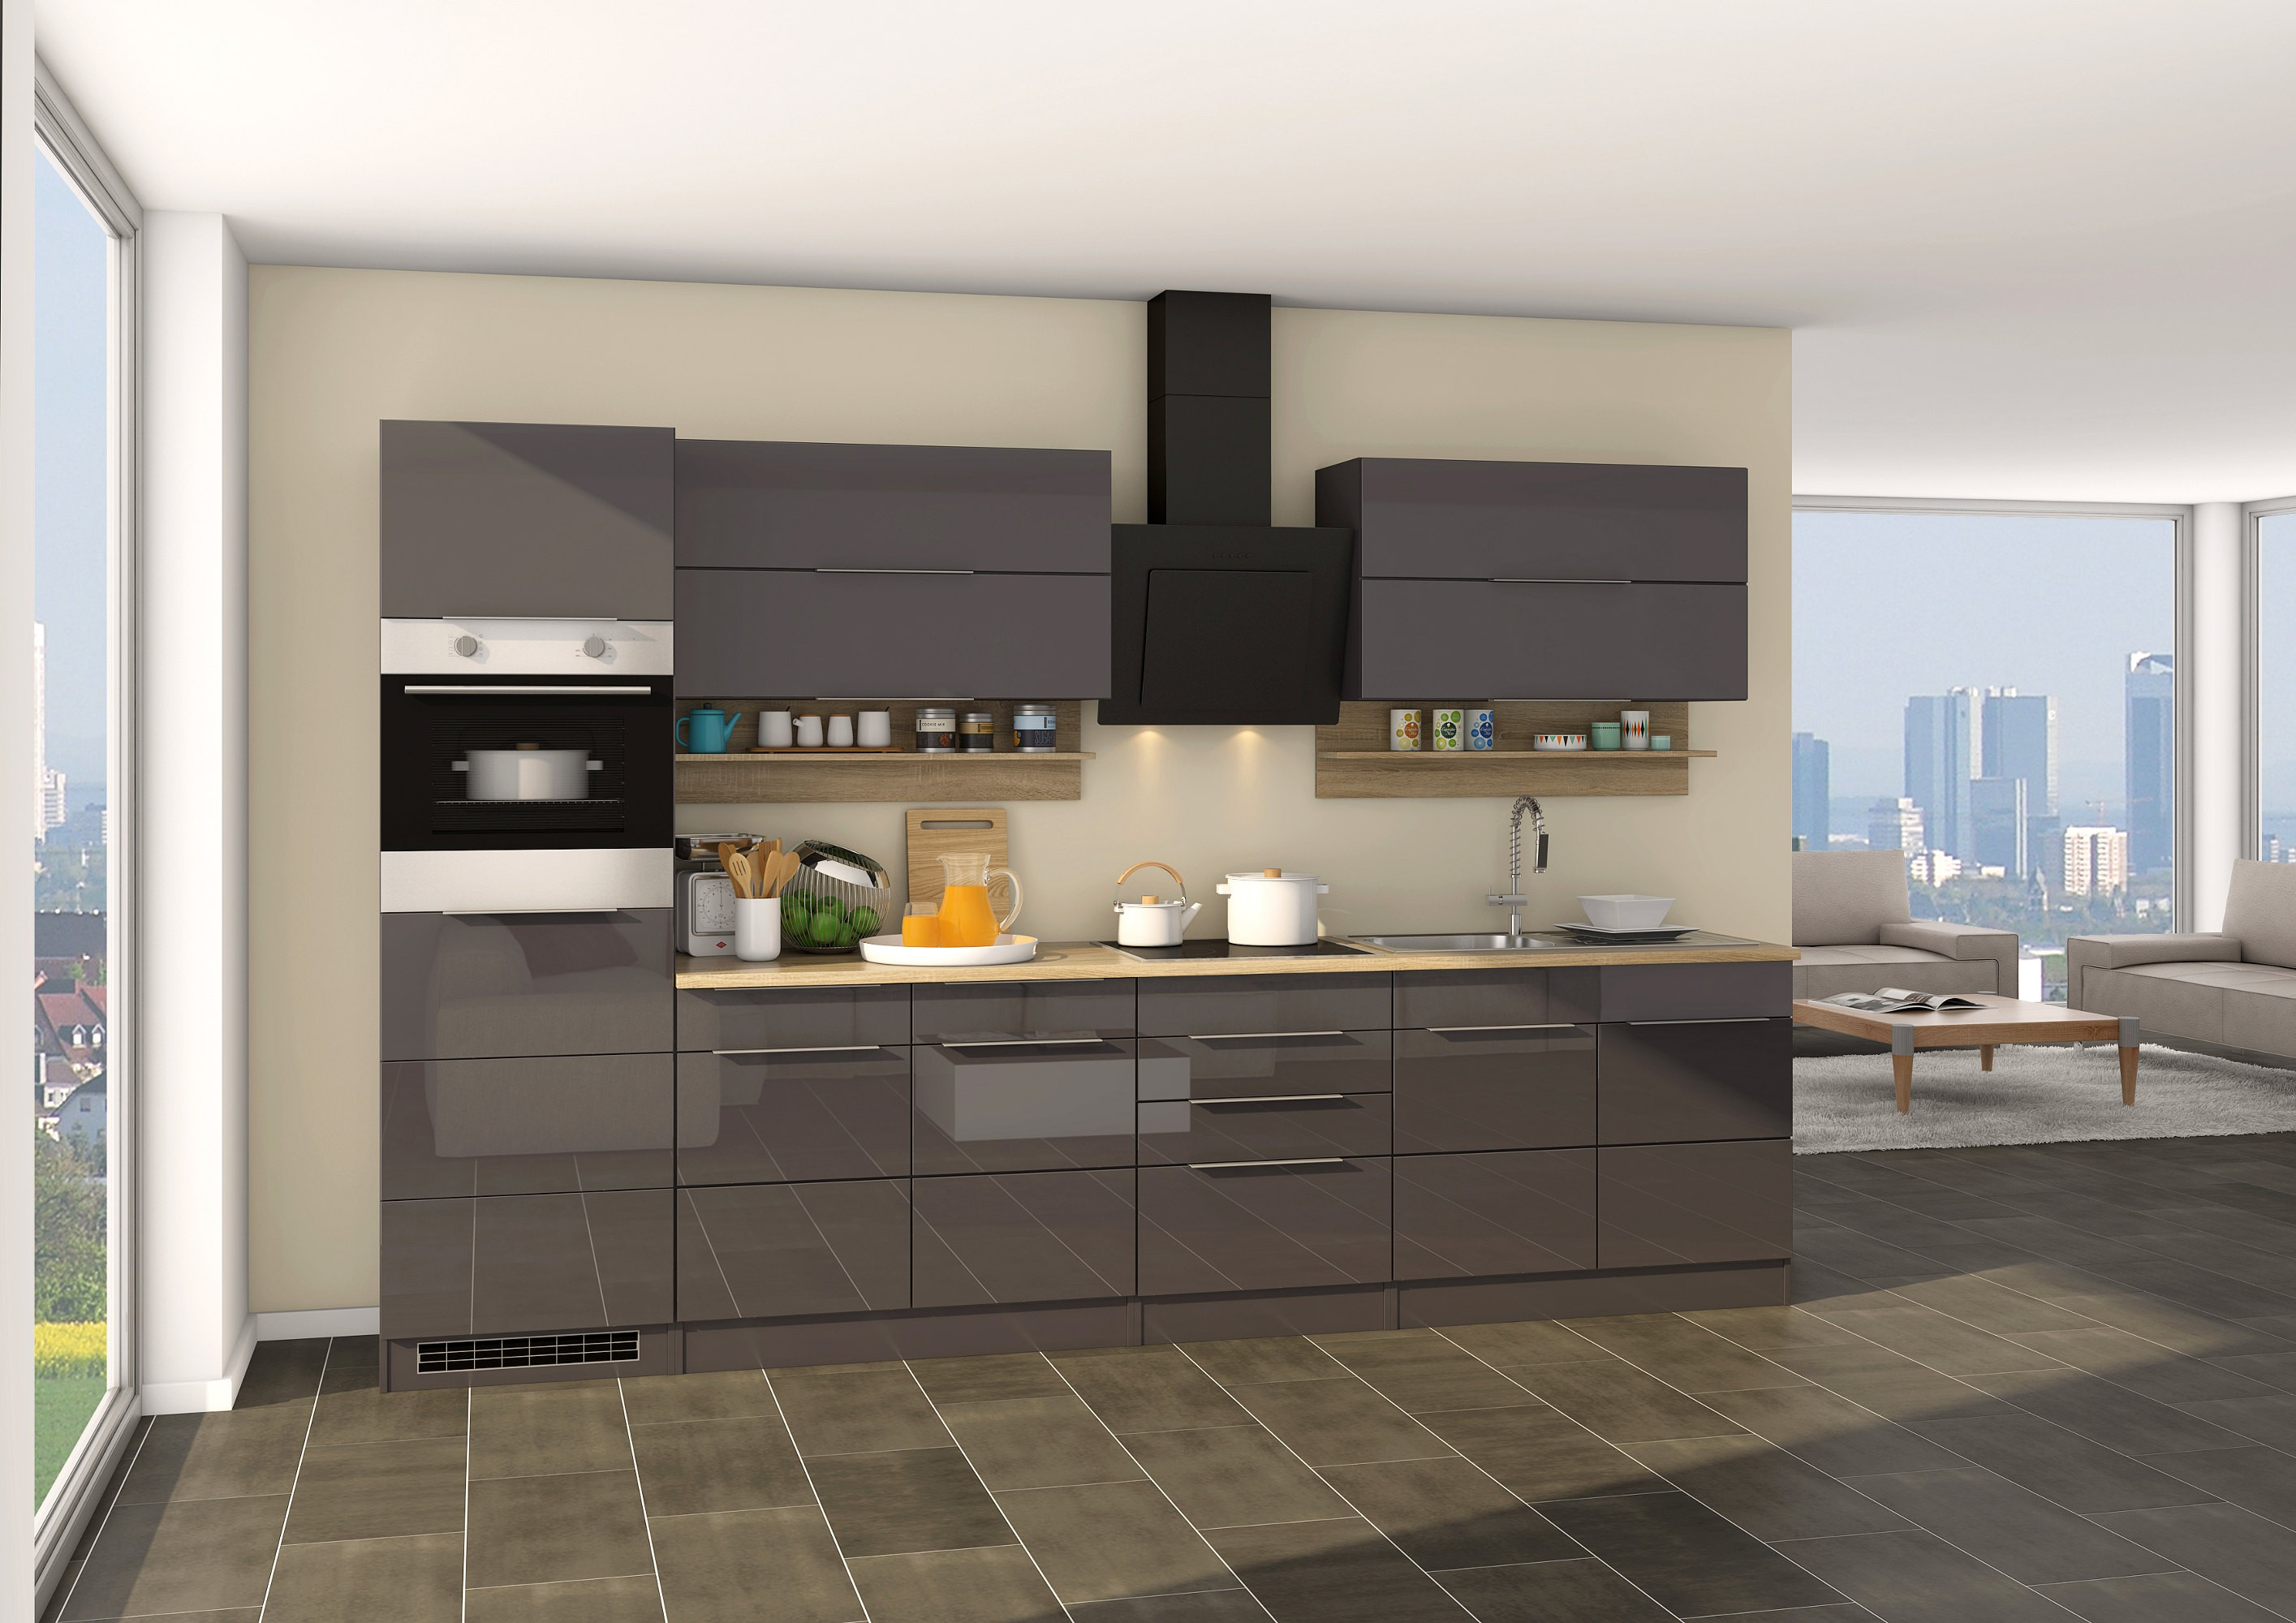 k chen h ngeschrank hamburg 2 klappen 110 cm breit hochglanz grau k che k chen h ngeschr nke. Black Bedroom Furniture Sets. Home Design Ideas